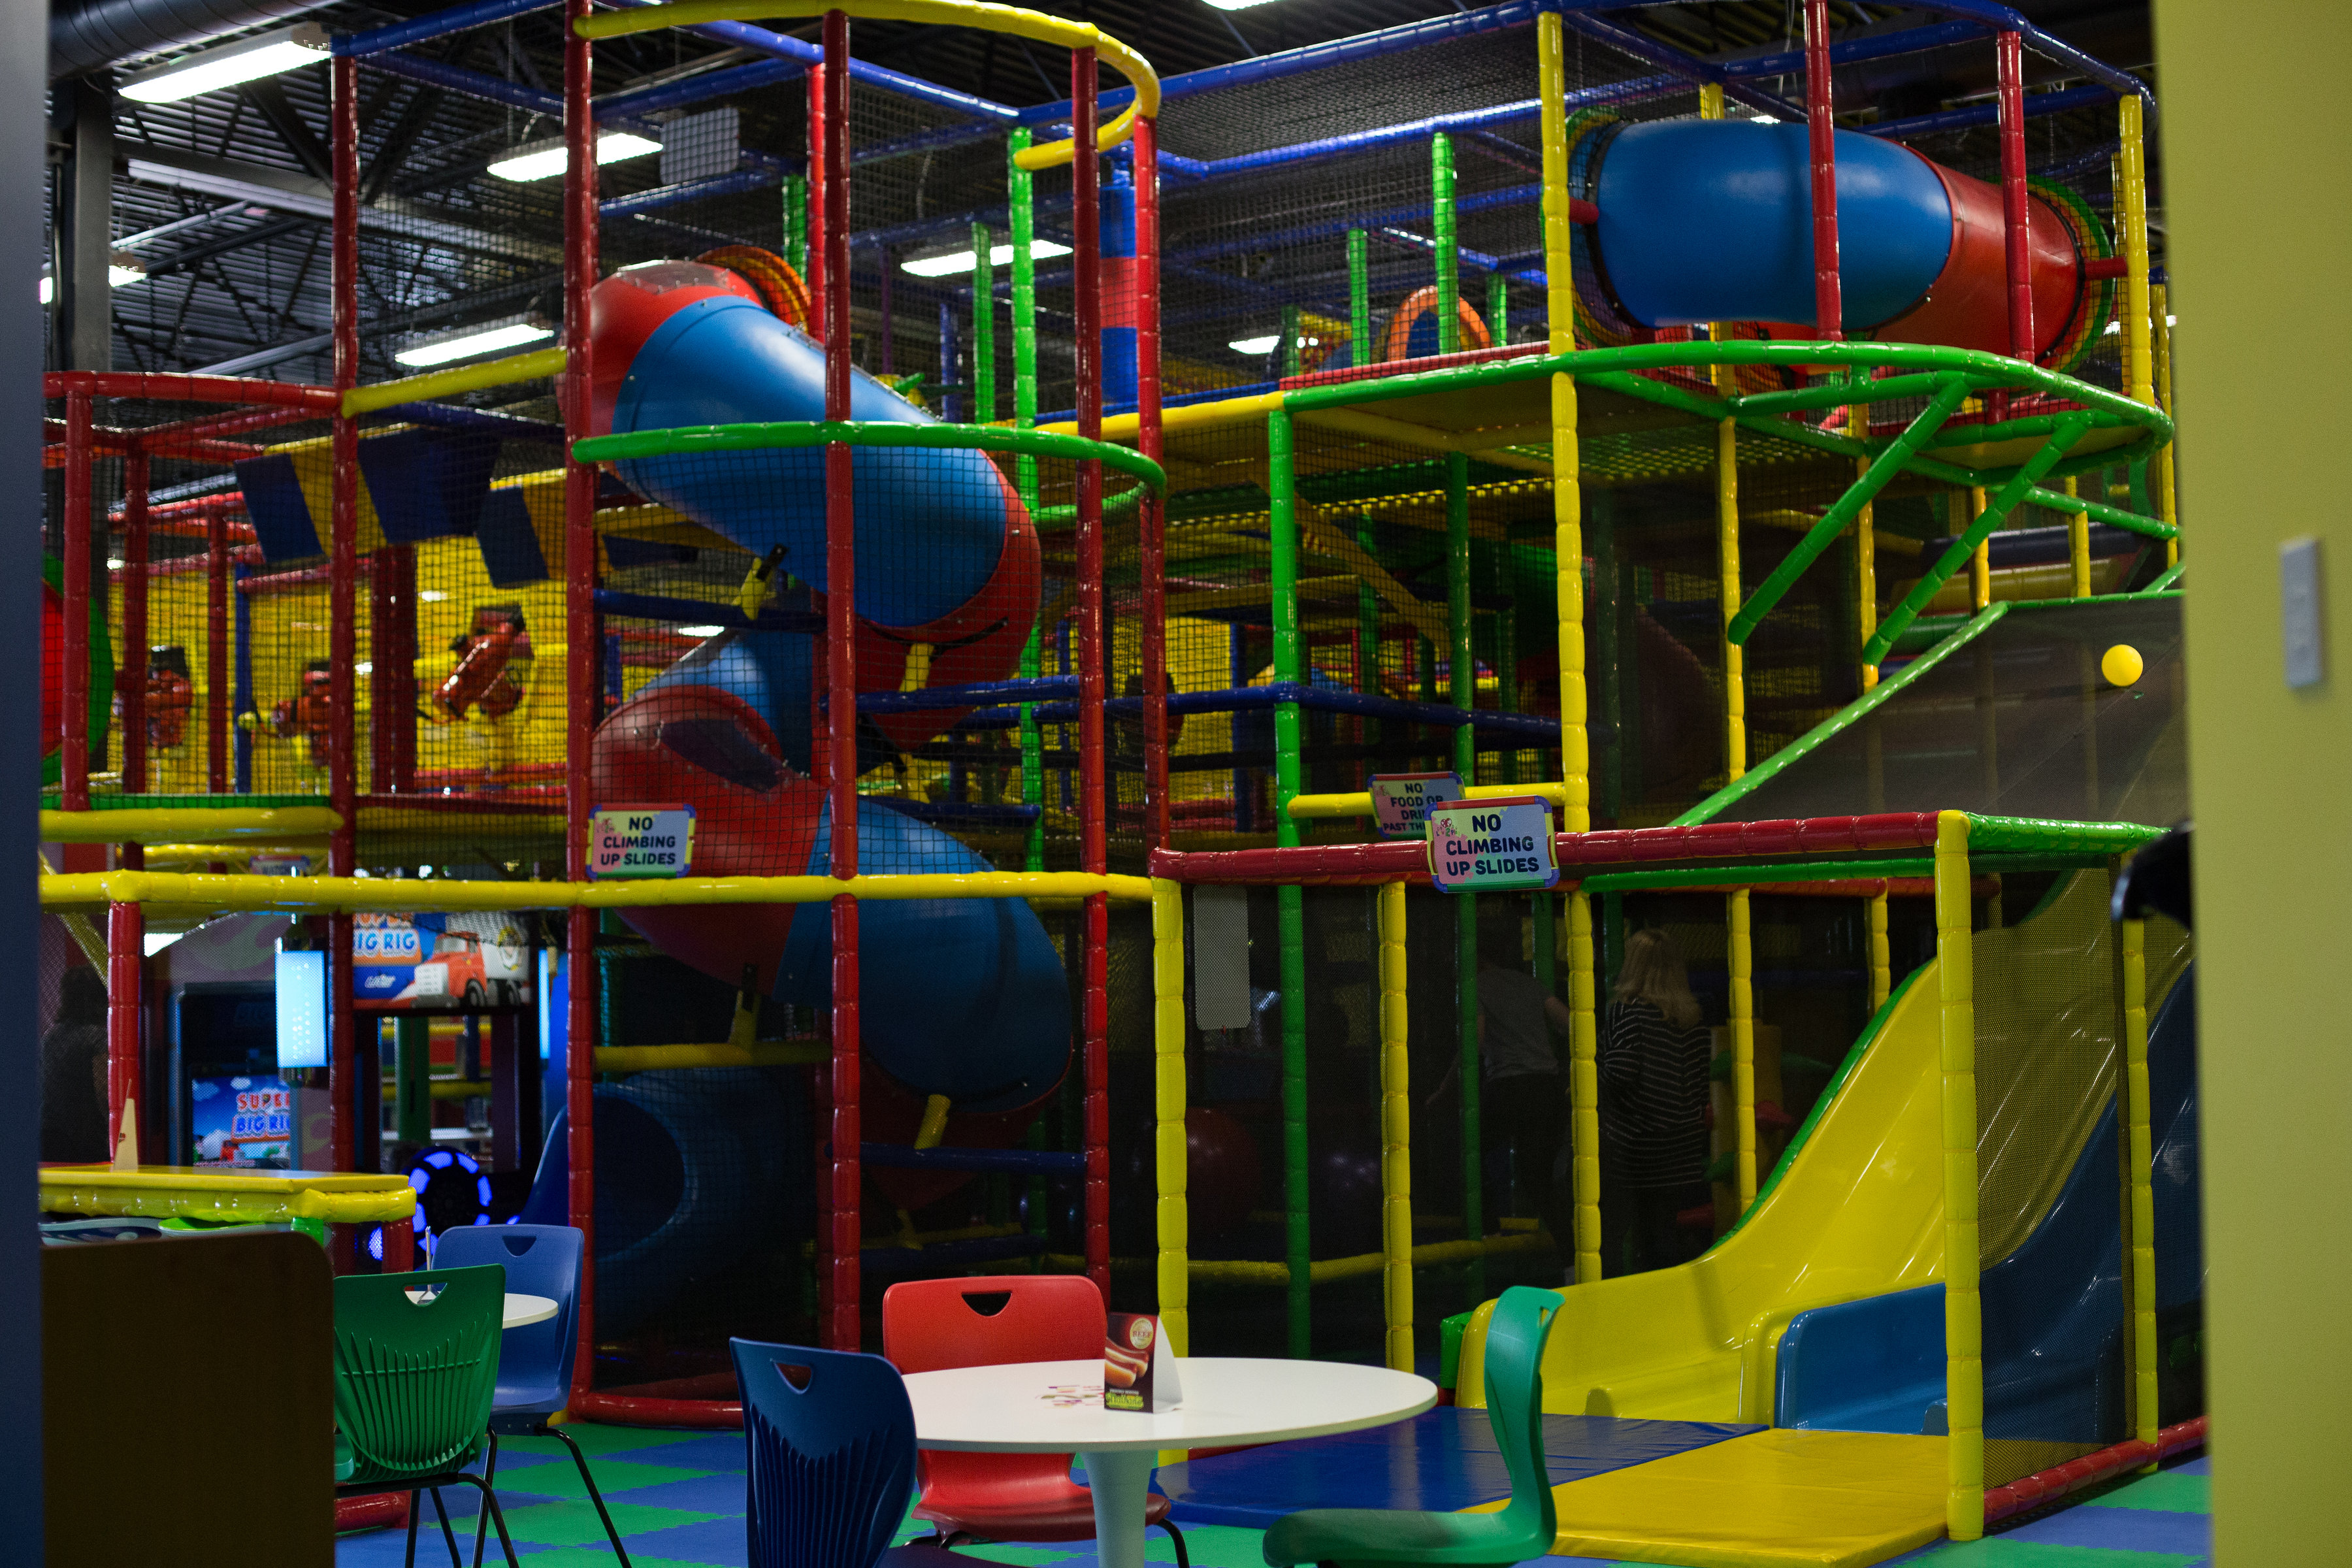 Indoor Playground, Luv2play, lake forest